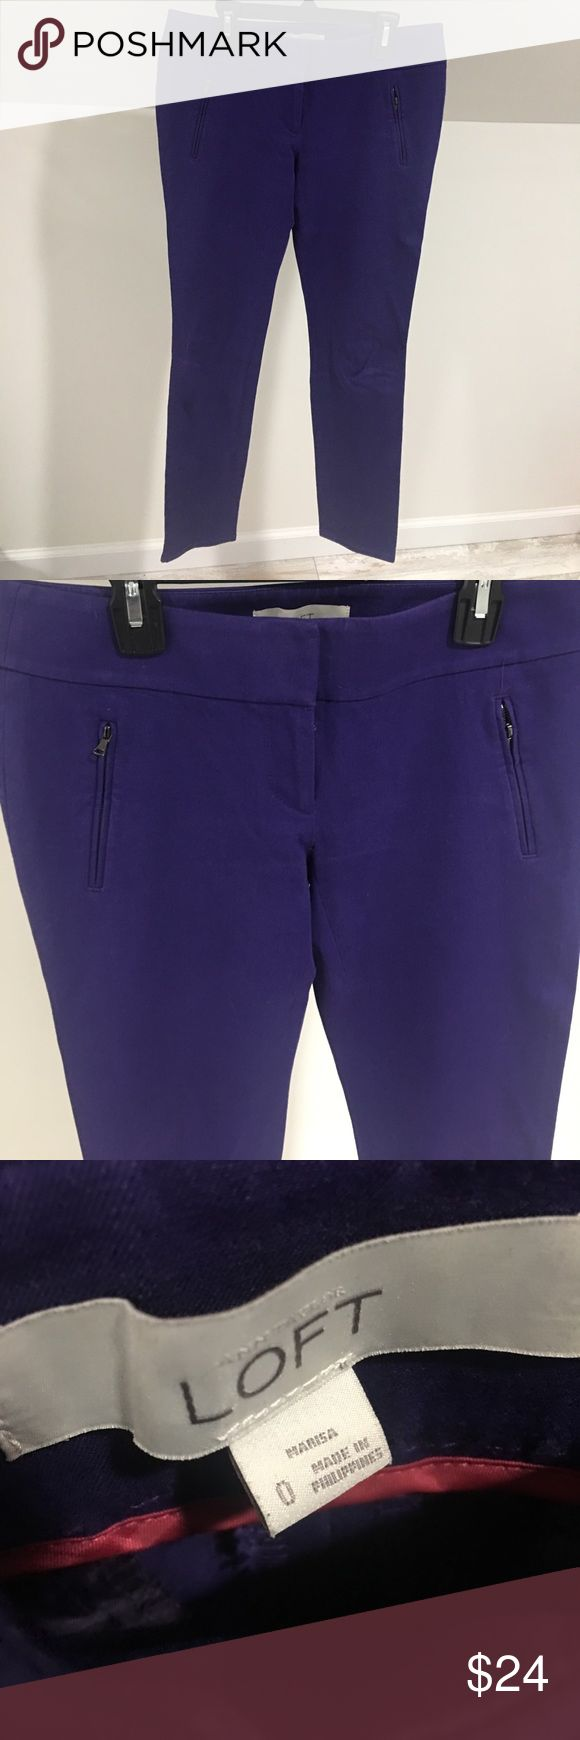 "Anne Taylor Loft Purple Pants Gorgeous purple pants from Anne Taylor Loft.  Great condition. 27"" inseam.  No trades and no holds LOFT Pants Trousers"